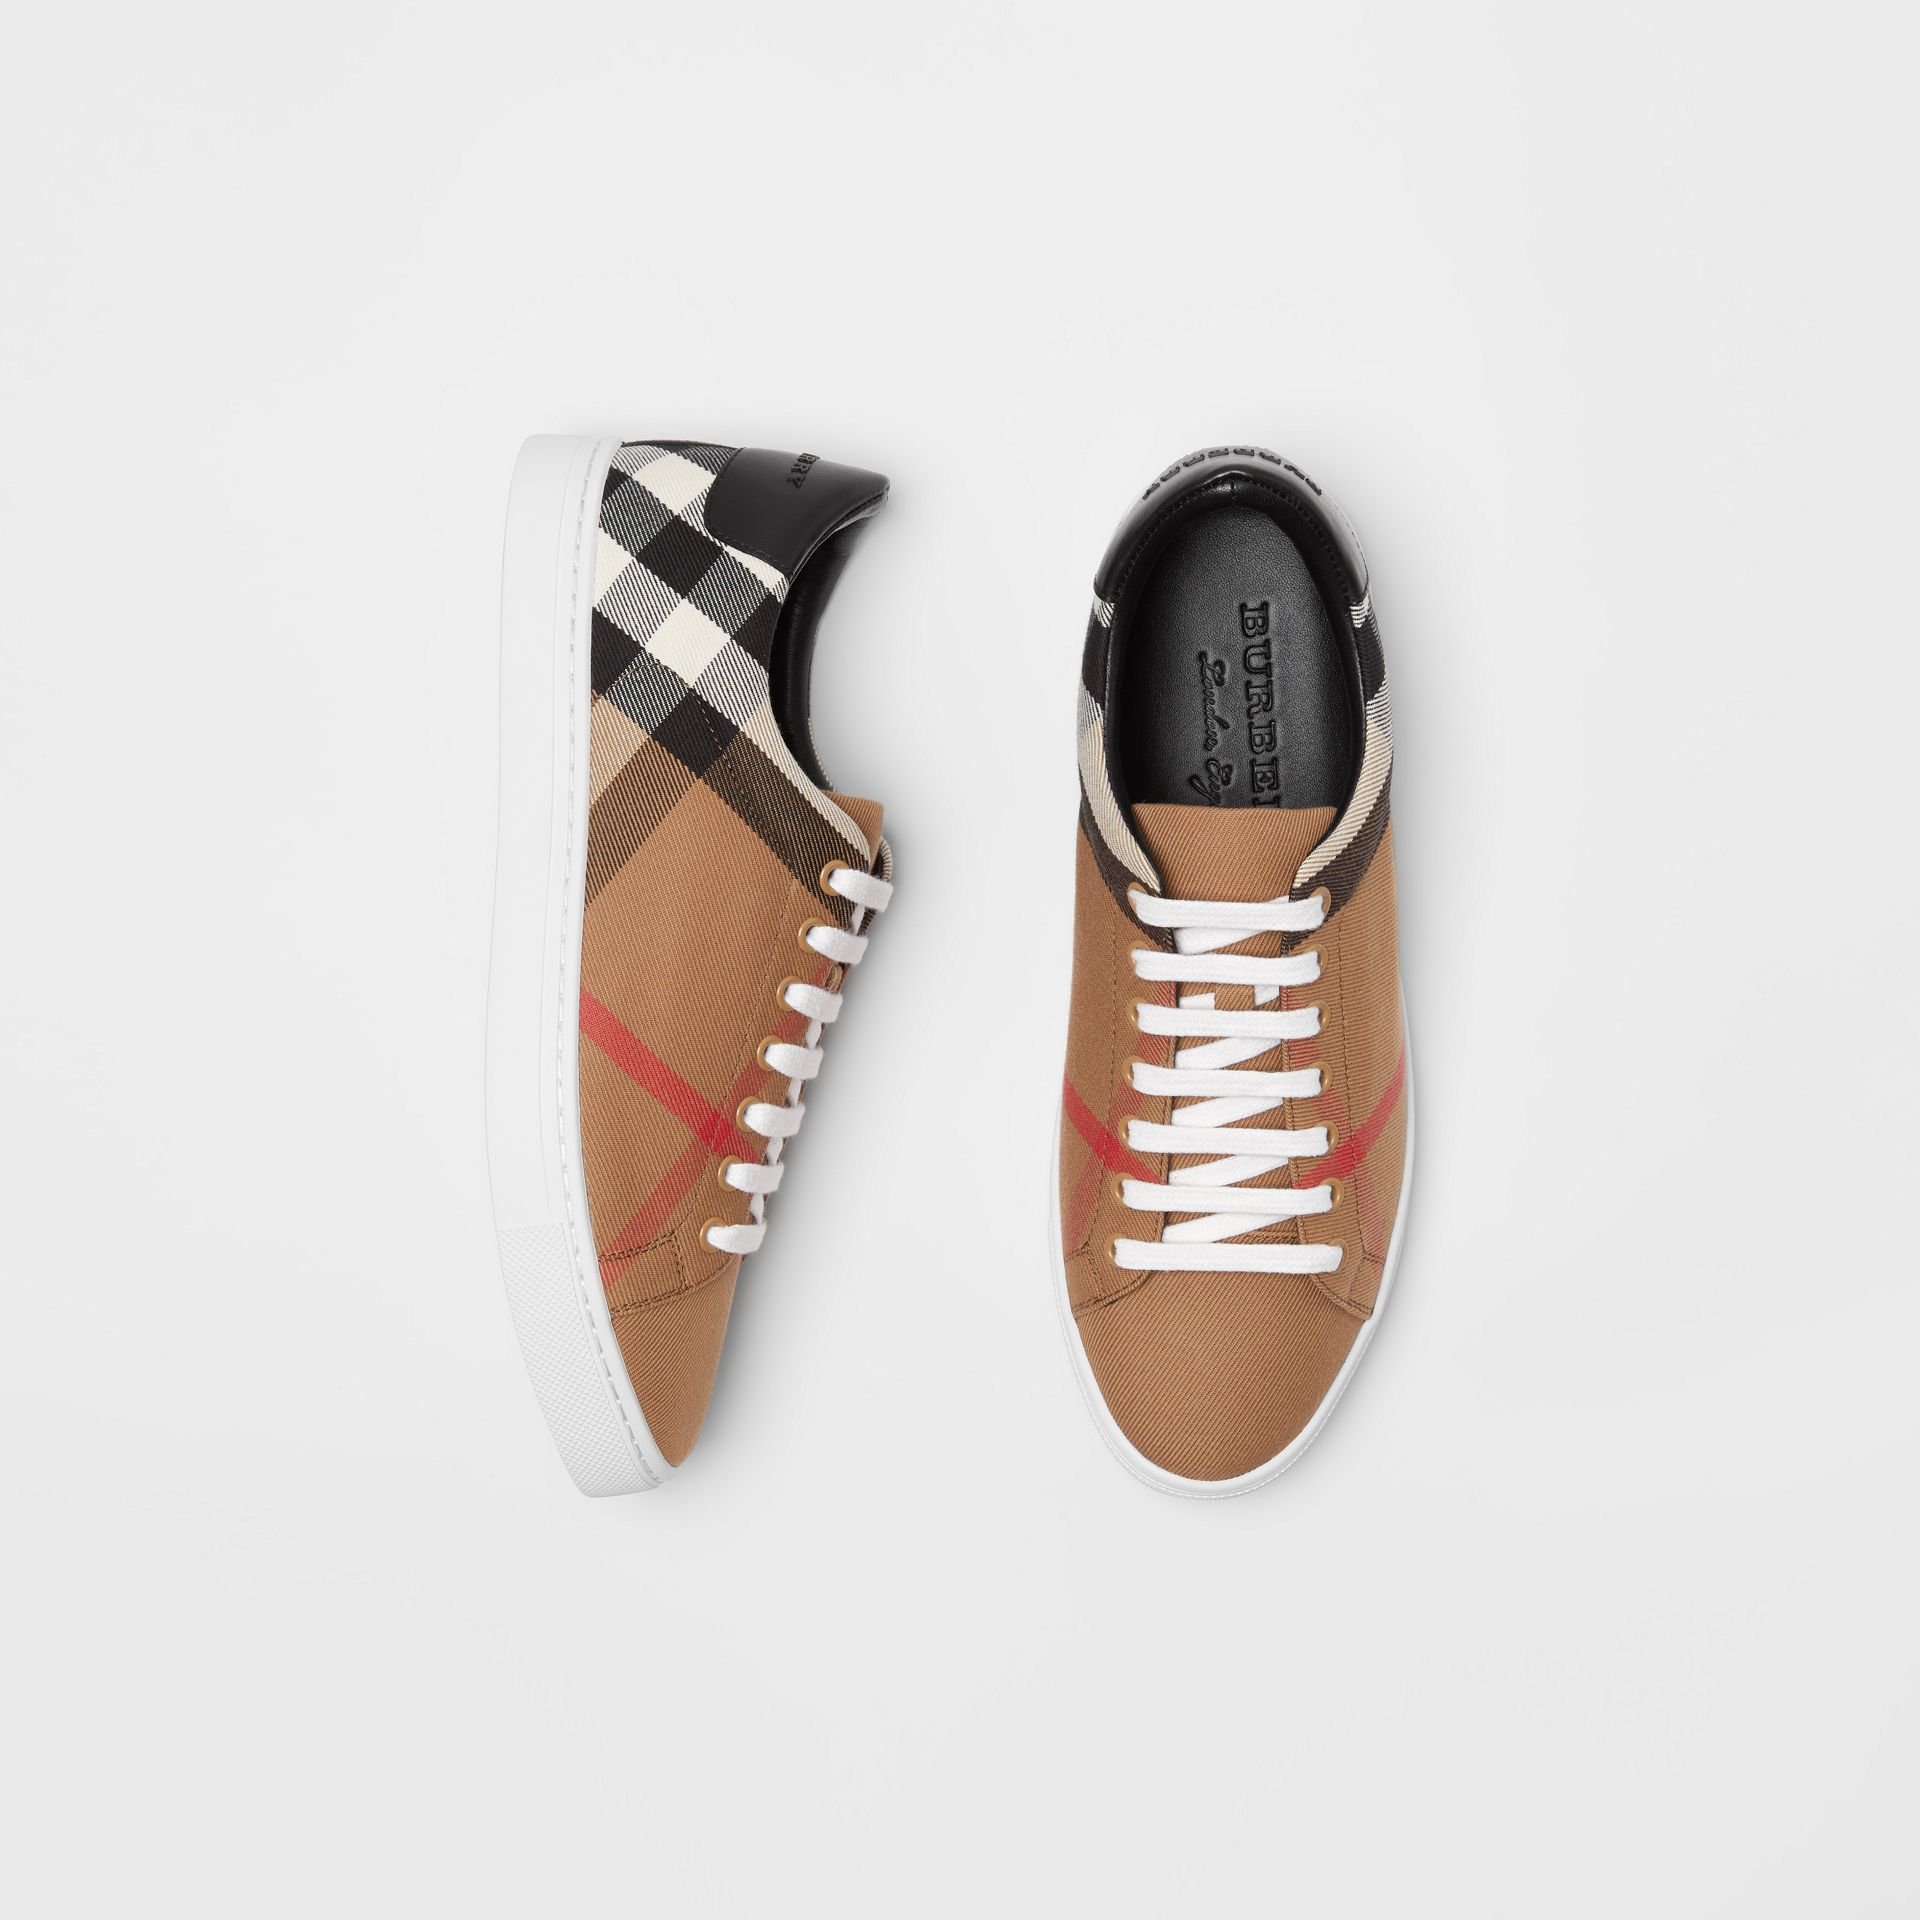 Sneakers en coton House check et cuir (Check/noir) - Homme | Burberry - photo de la galerie 0